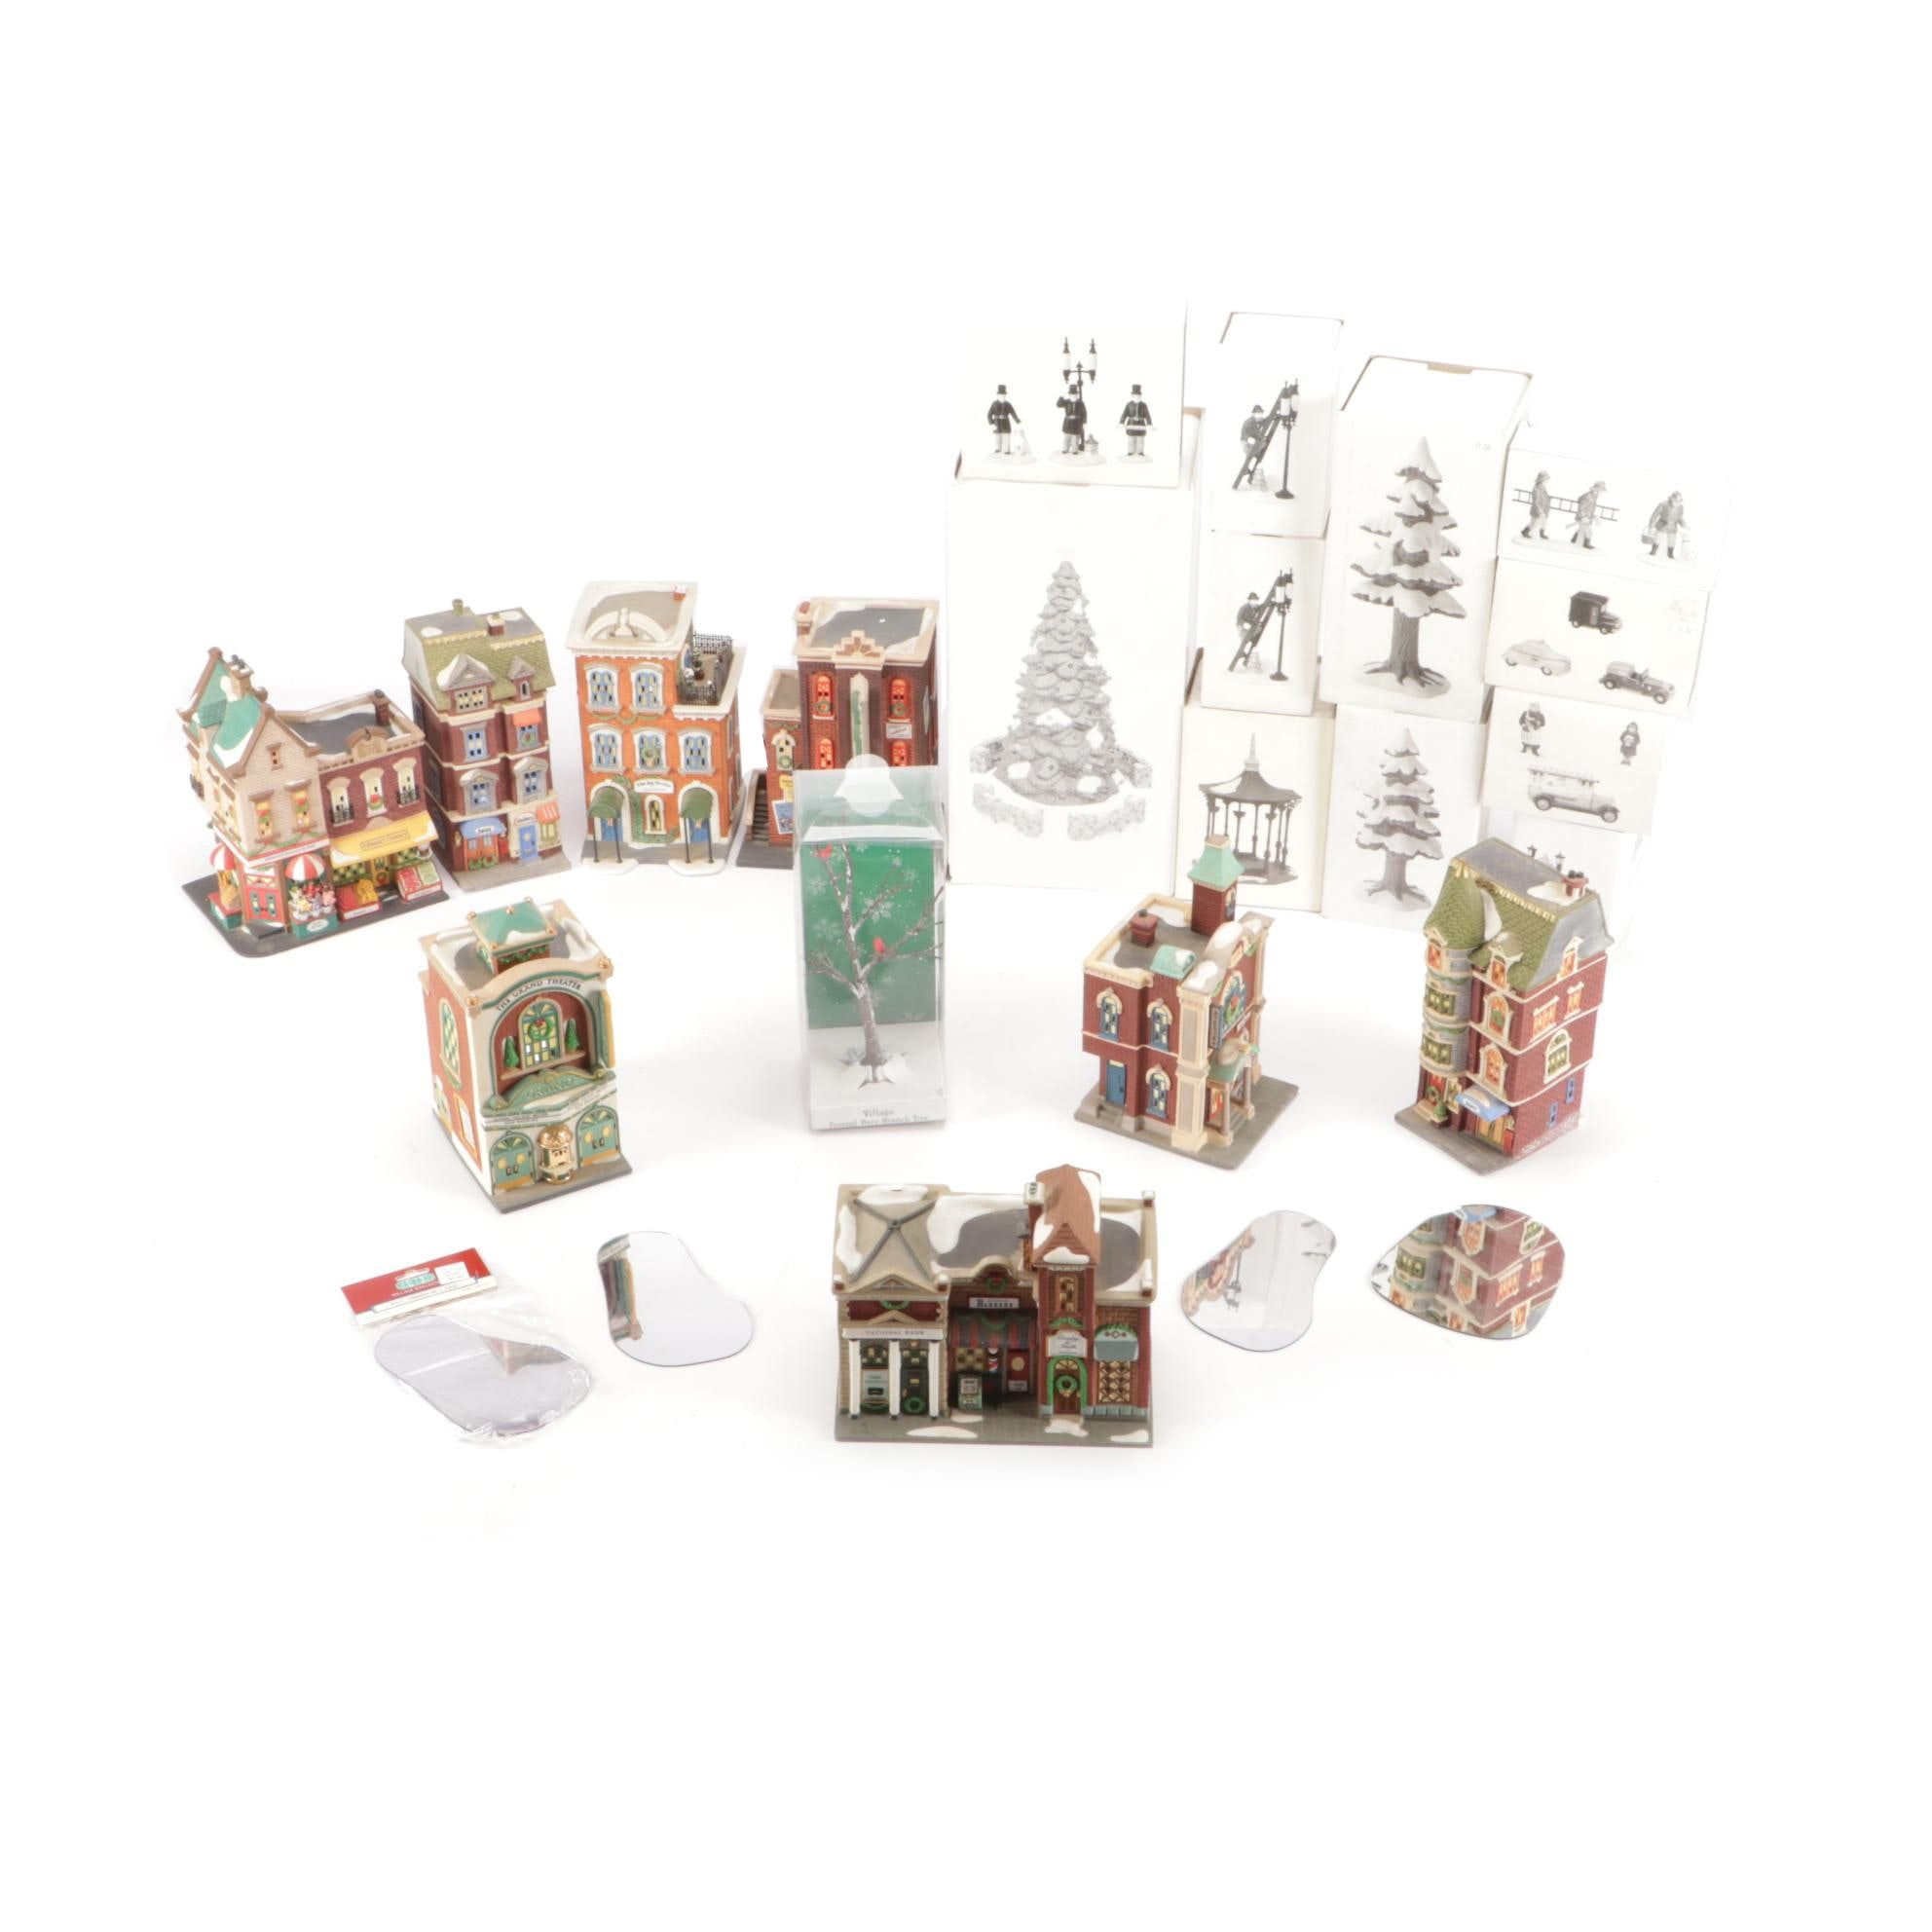 Department 56 Christmas Building and Accessories